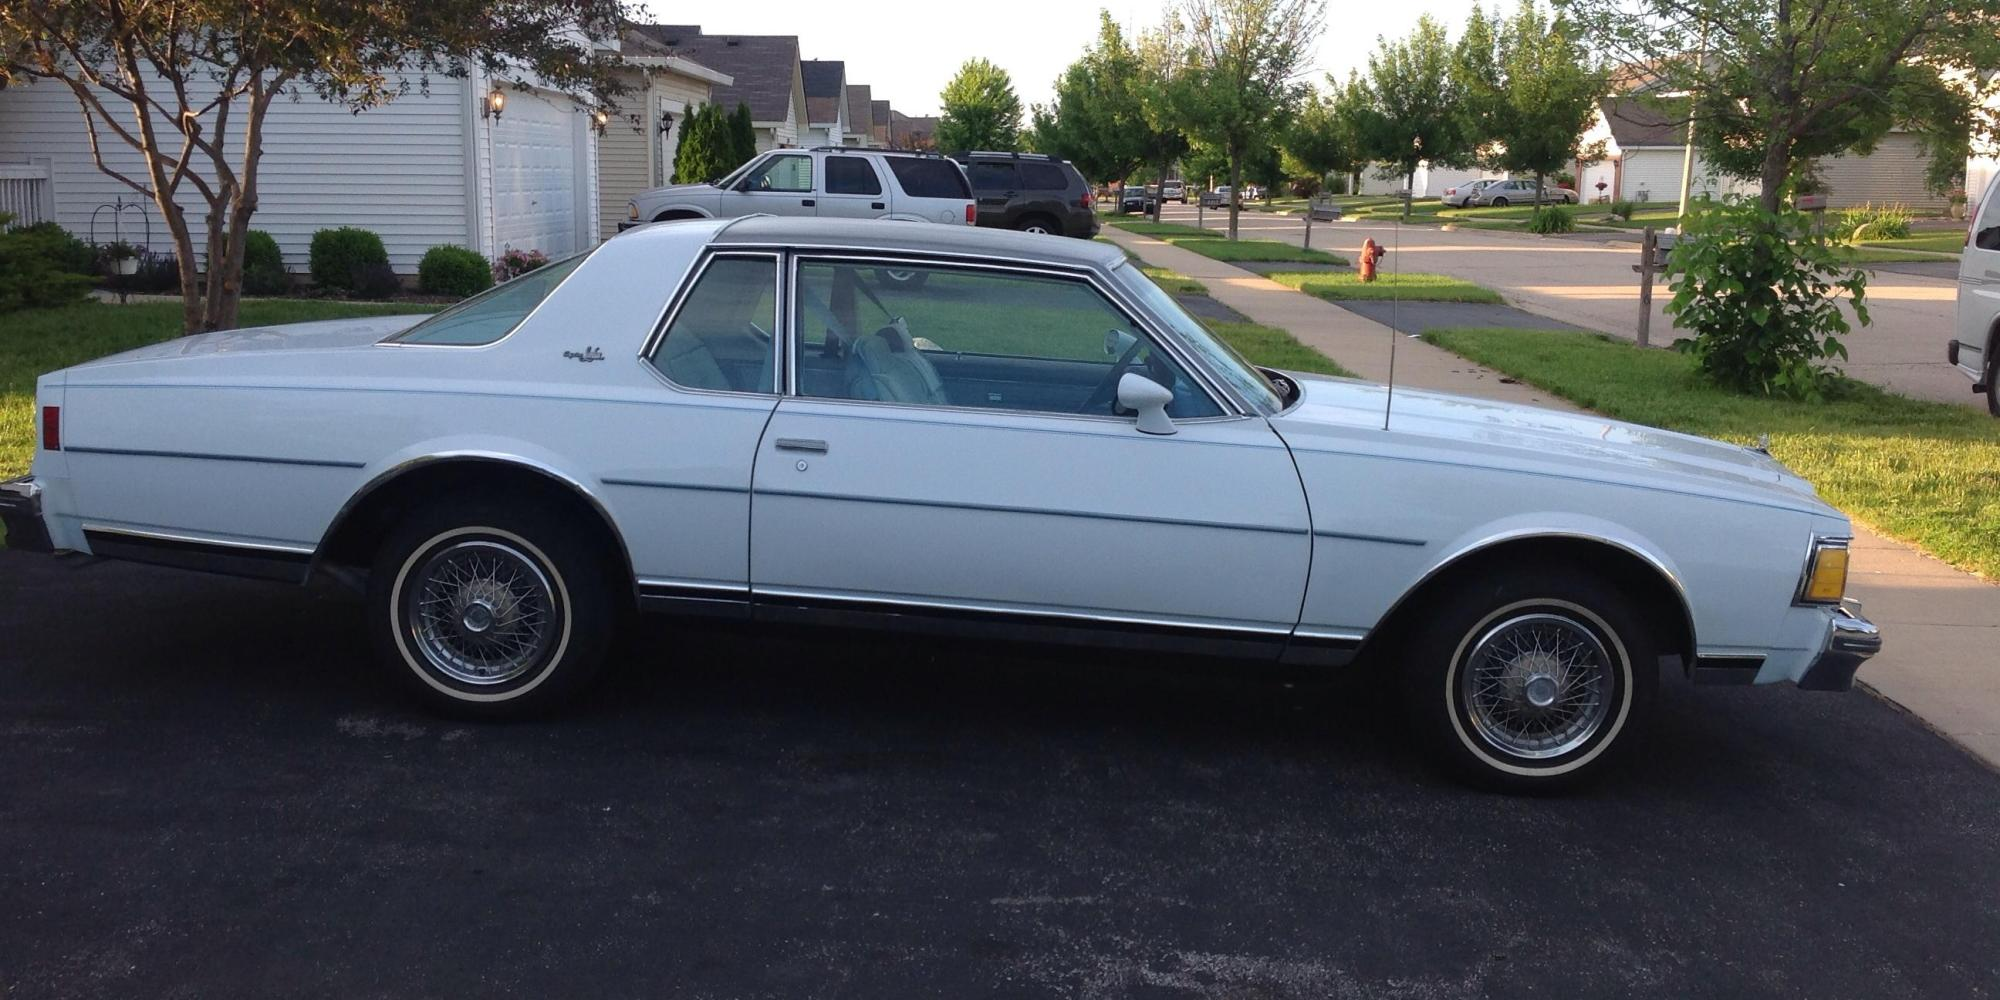 hight resolution of soxchamps14 1979 chevrolet caprice